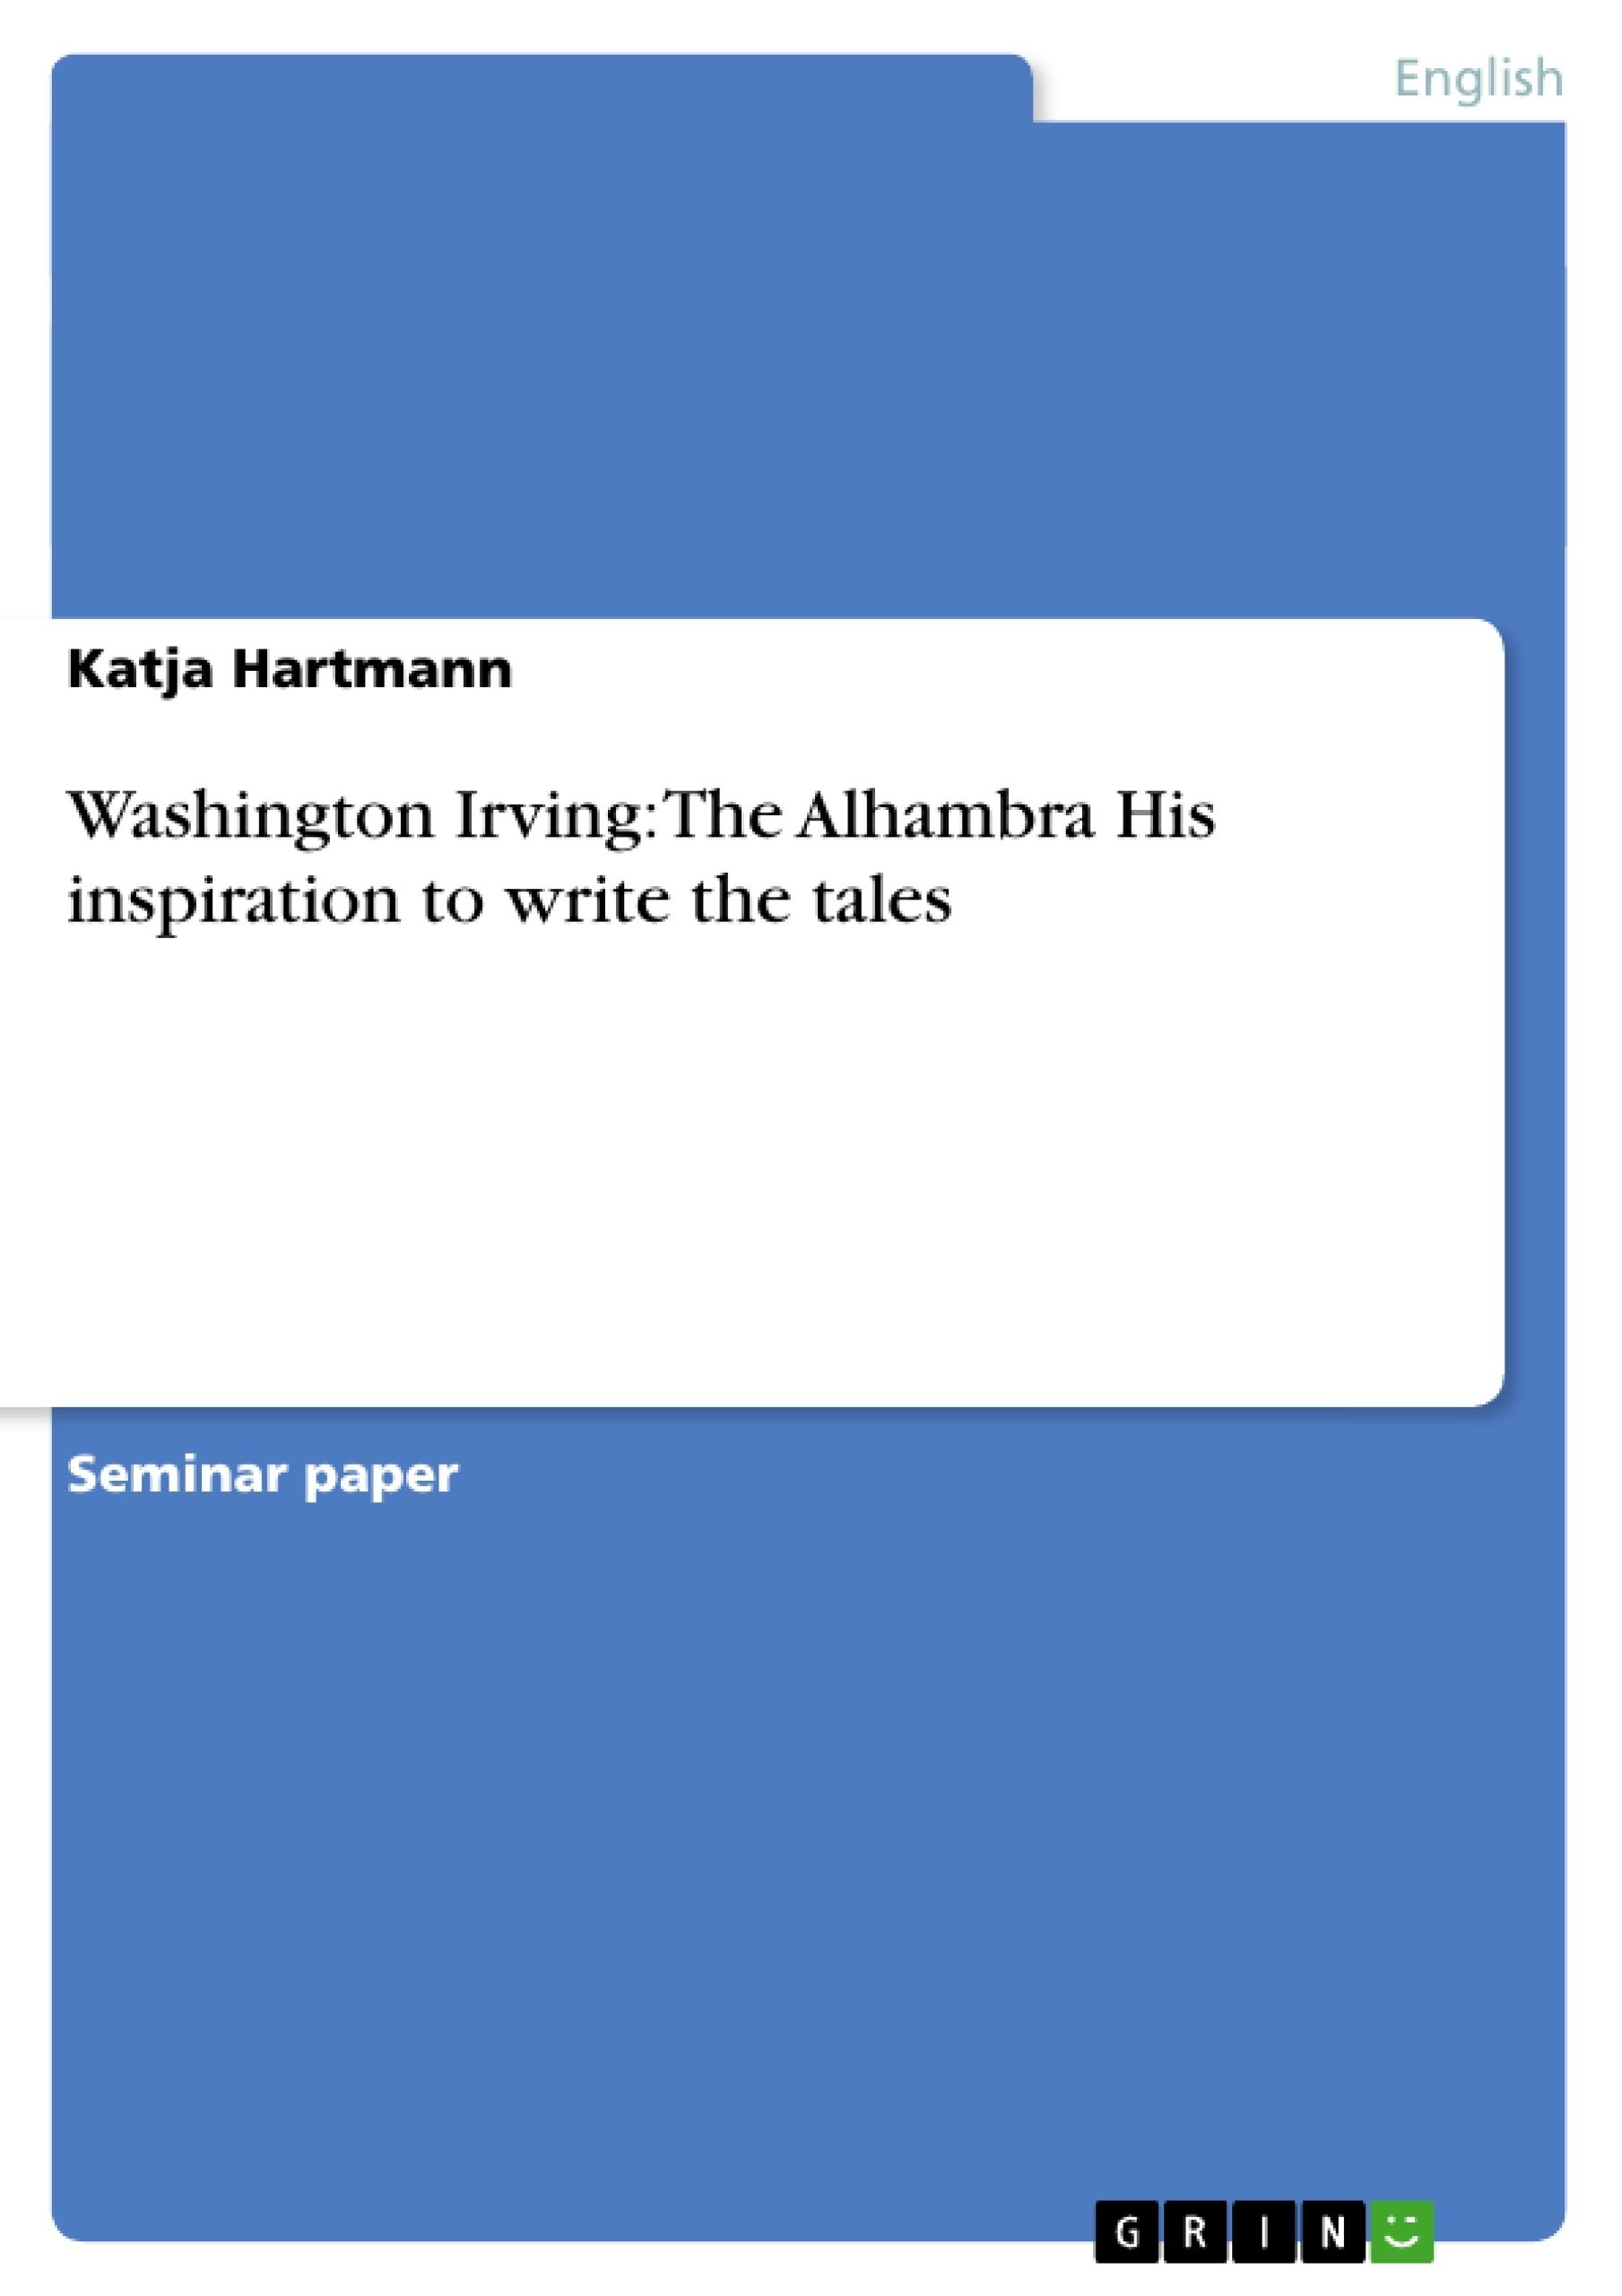 Title: Washington Irving: The Alhambra  His inspiration to write the tales